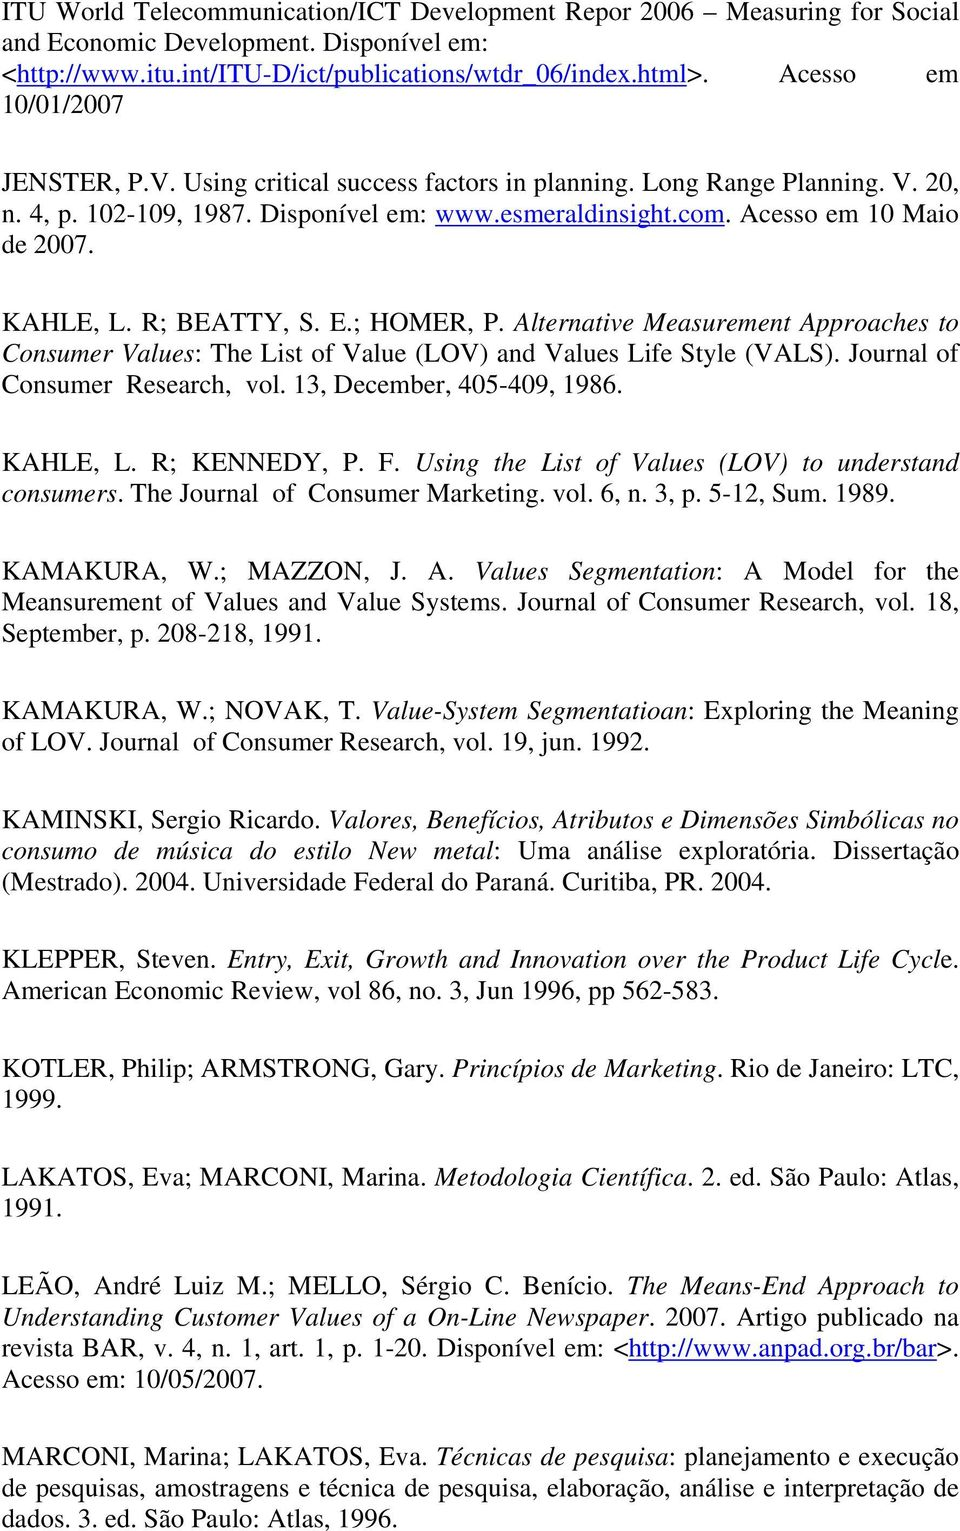 KAHLE, L. R; BEATTY, S. E.; HOMER, P. Alternative Measurement Approaches to Consumer Values: The List of Value (LOV) and Values Life Style (VALS). Journal of Consumer Research, vol.